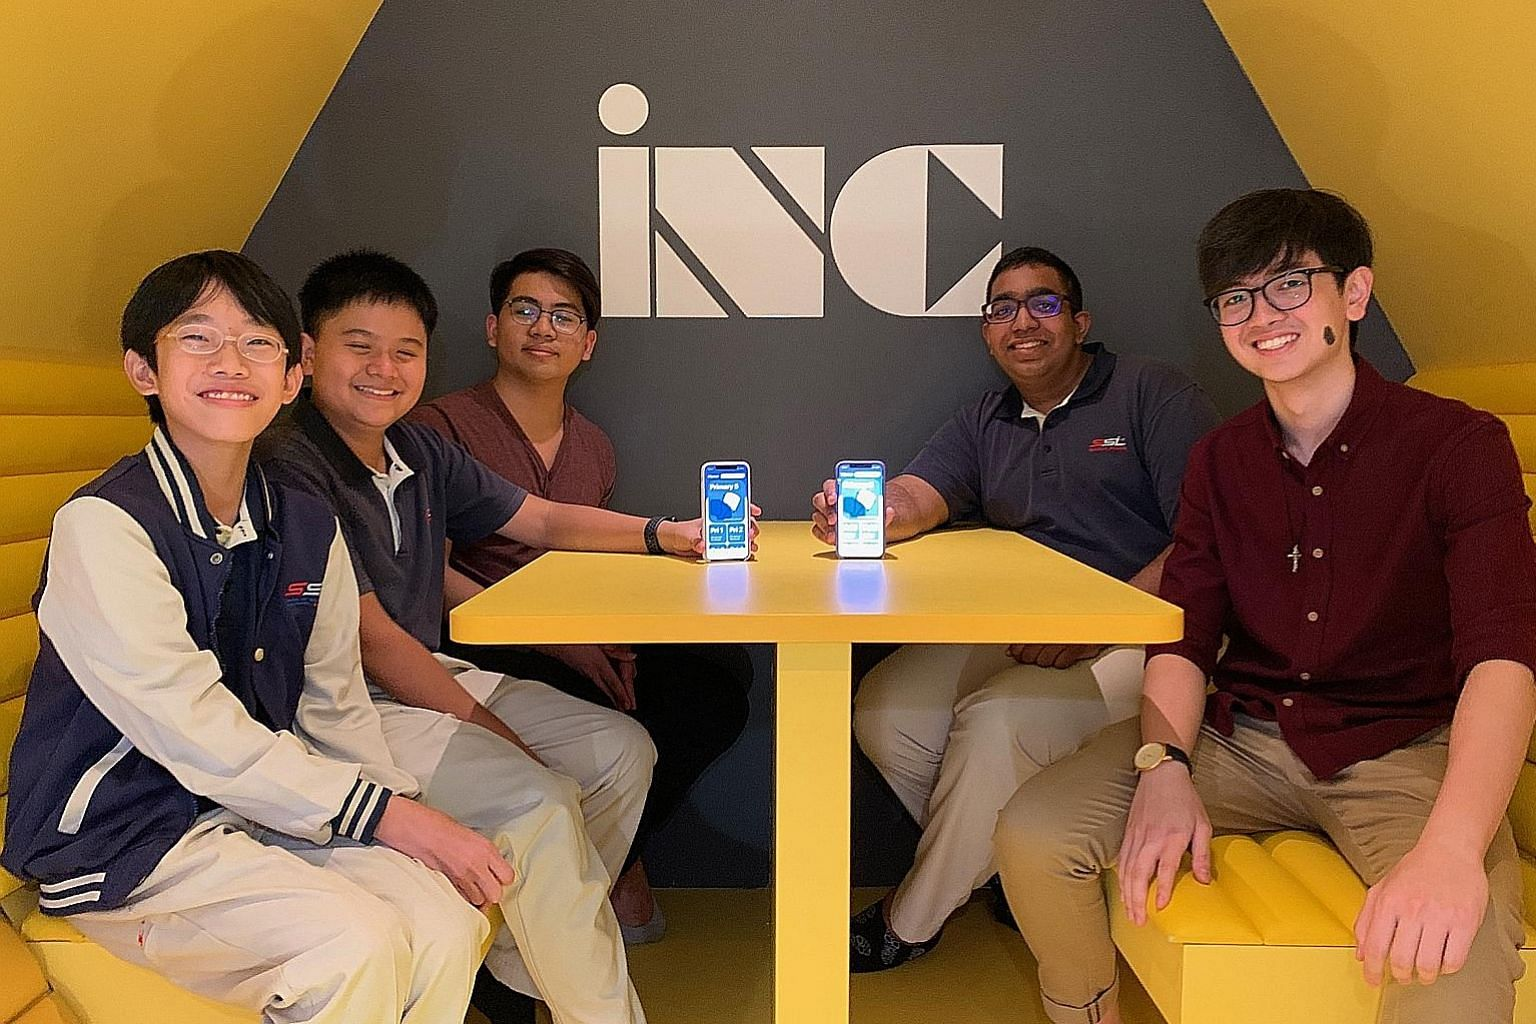 Young app developers (from left) Yee Jia Chen, Axios Yeo, Dalton Ng, Shannen Rajoo and James Lim. They are from the School of Science and Technology, Singapore, which aims to nurture innovators who improve society through real-world application of sc